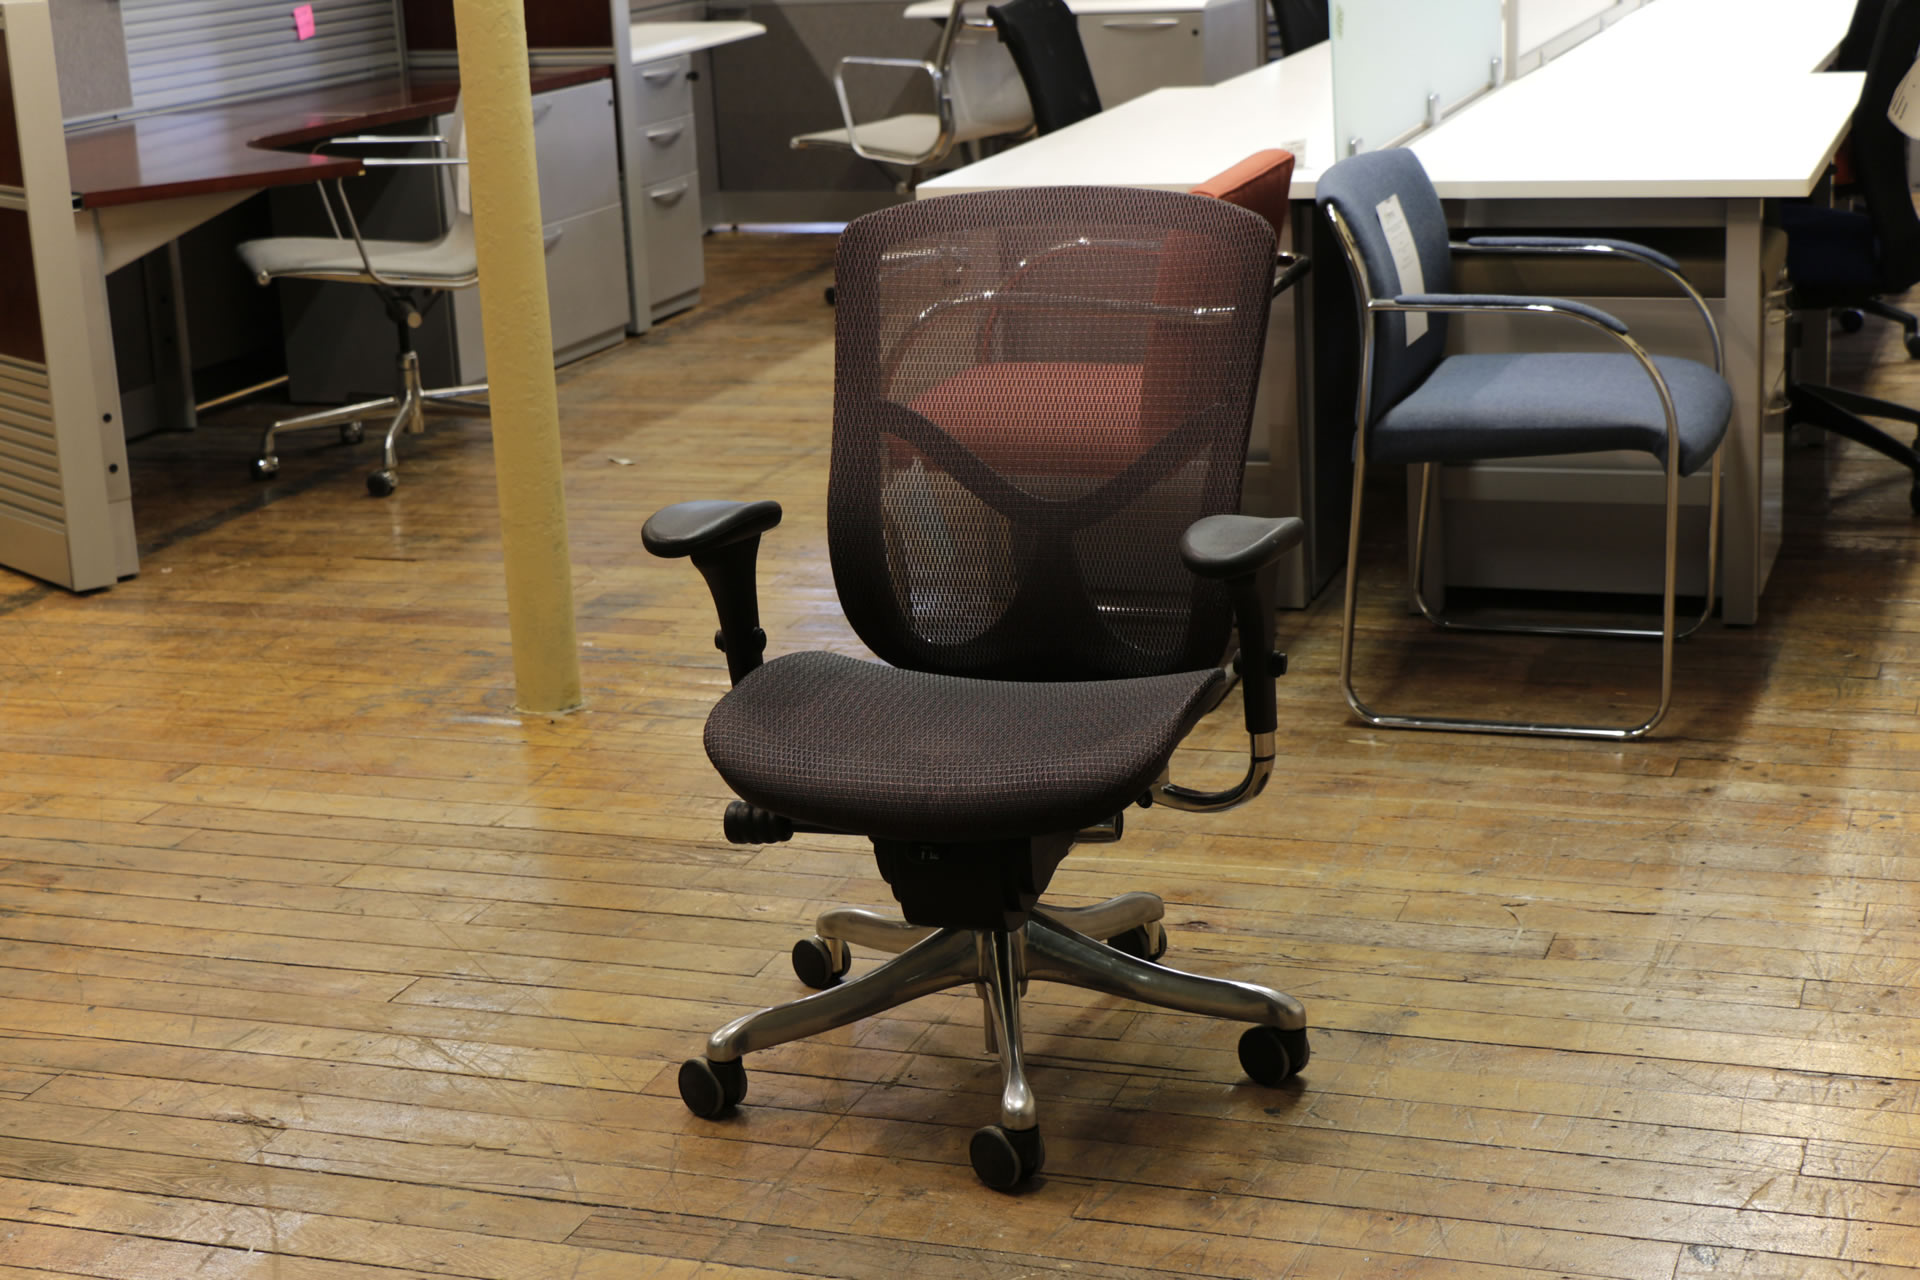 peartreeofficefurniture_peartreeofficefurniture_peartreeofficefurniture_2015-06-16_20-36-35.jpg